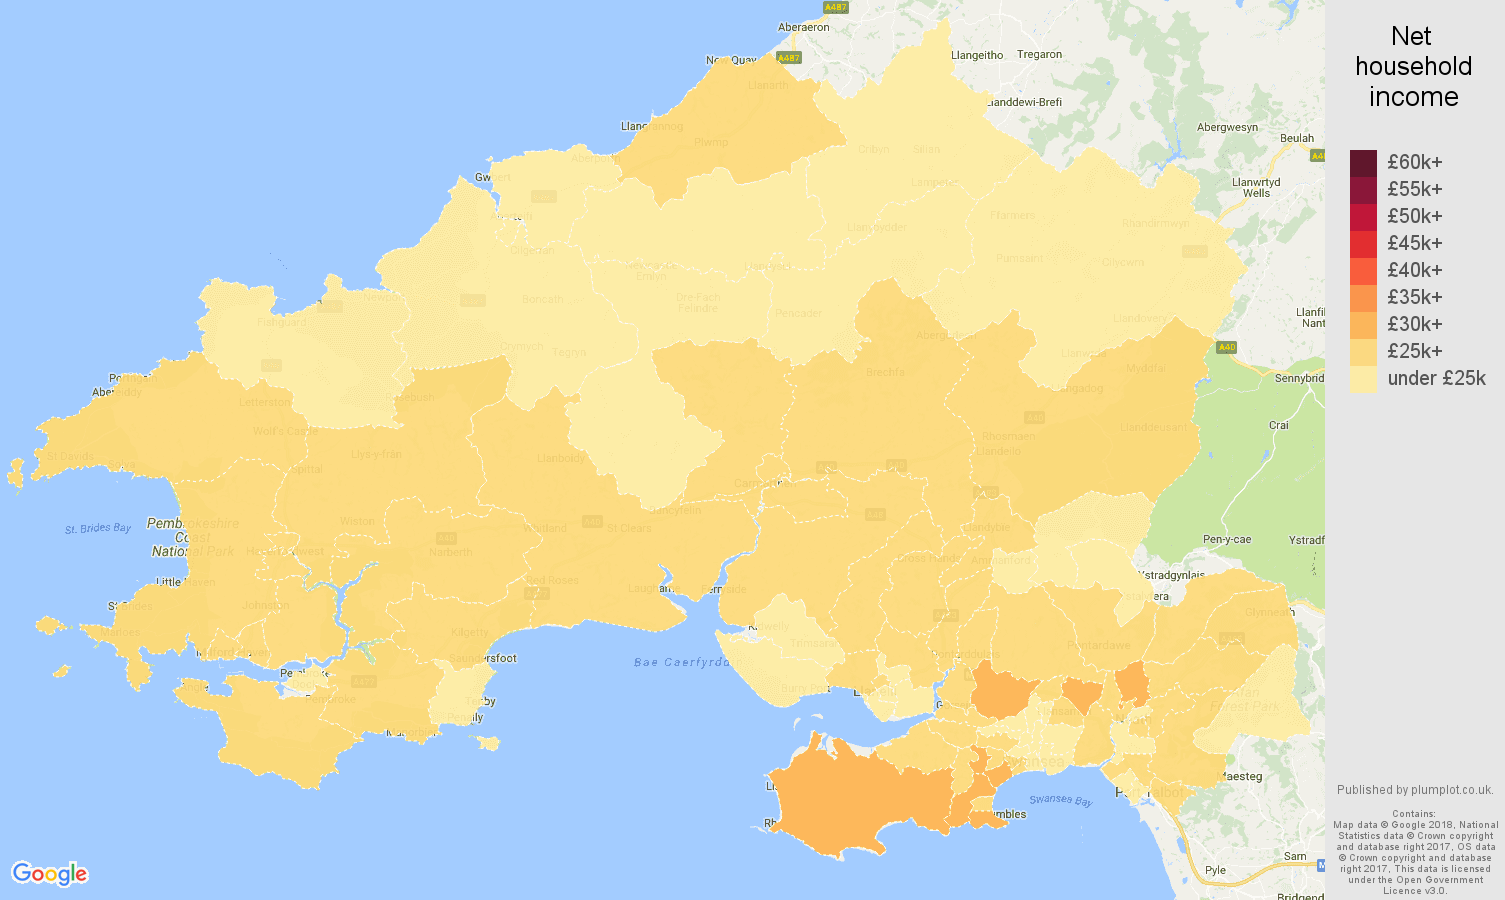 Swansea net household income map